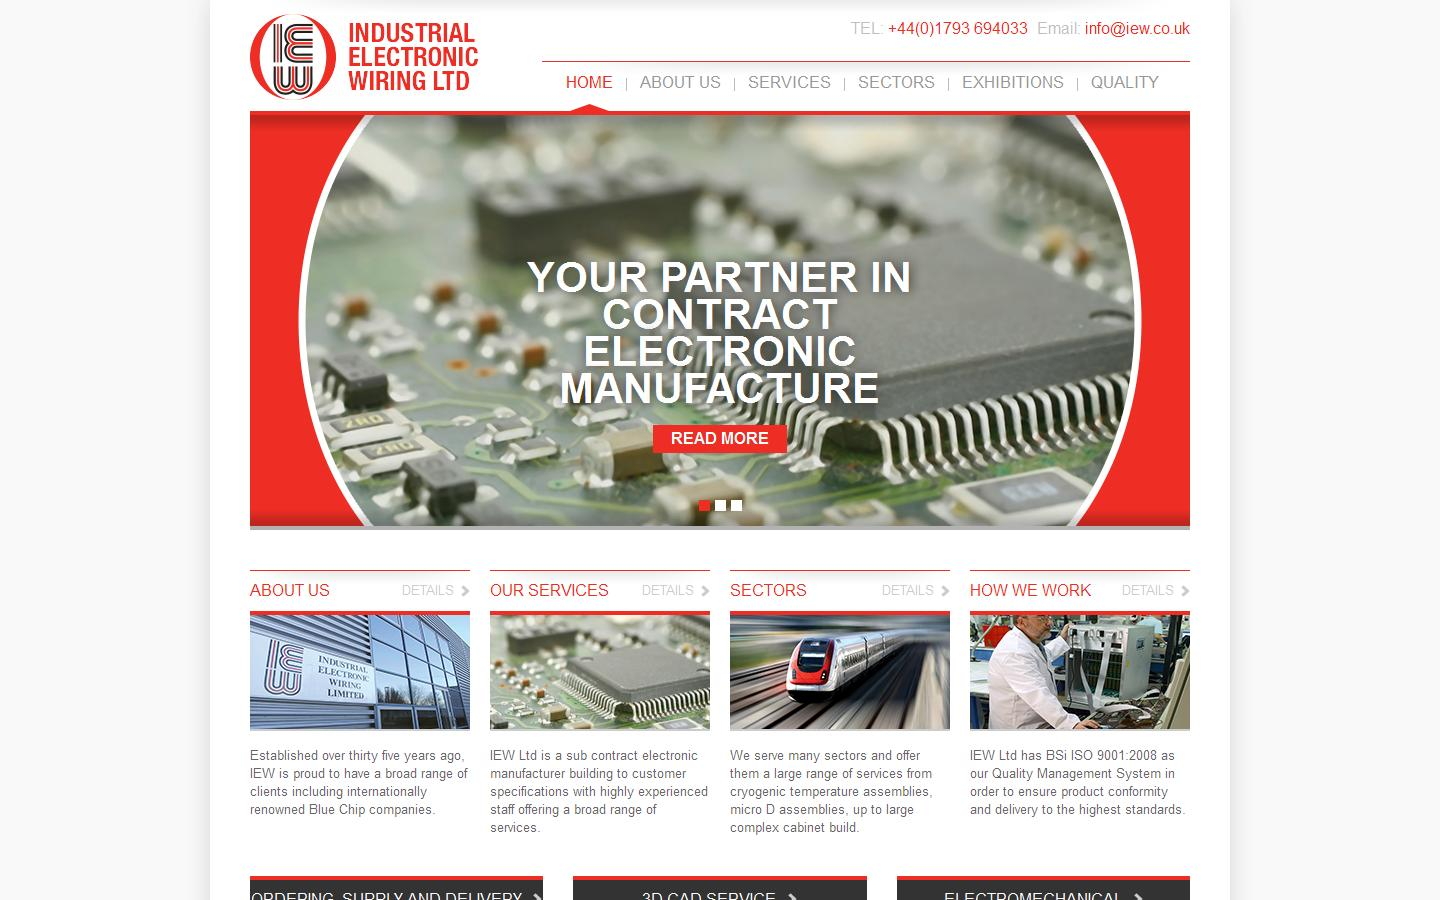 Surprising Industrial Electronic Wiring Ltd Swindon Wiltshire Sn2 8Uu Wiring 101 Breceaxxcnl